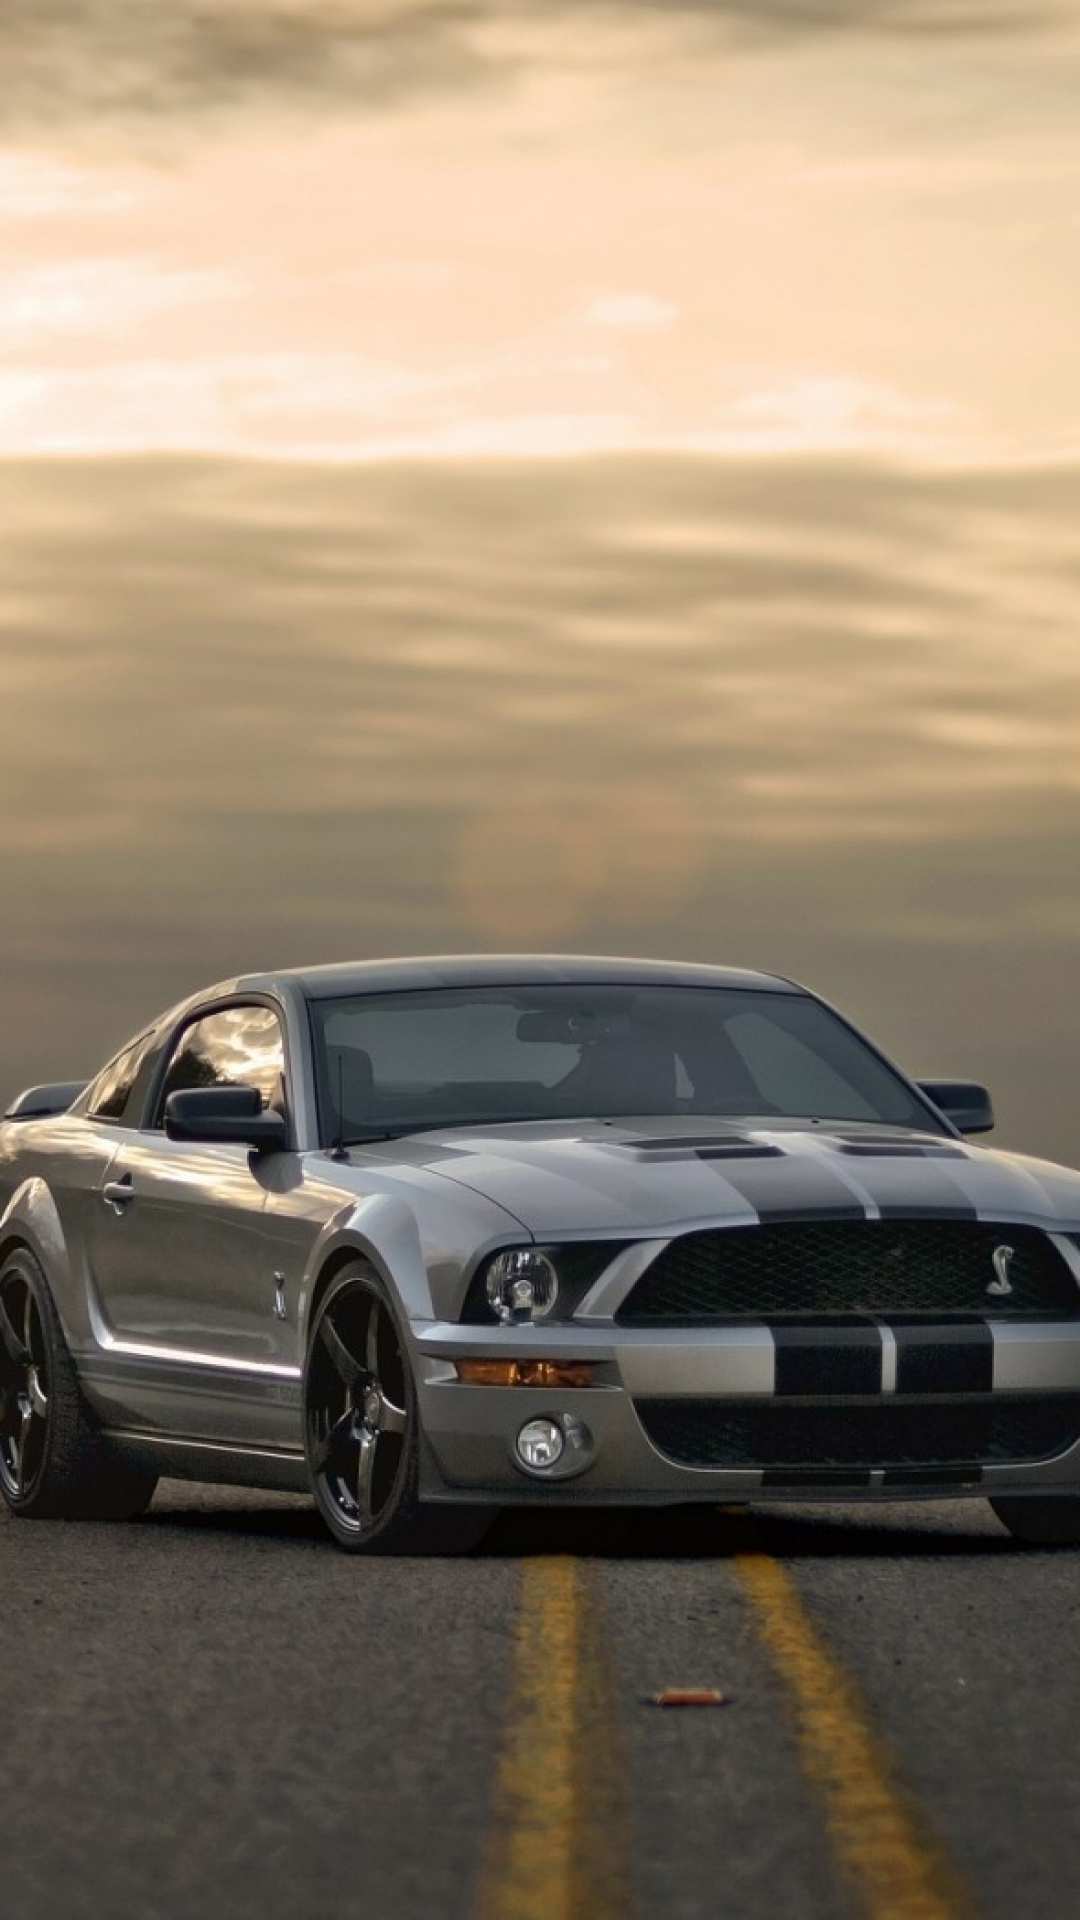 Htc One M8 Wallpaper Hd Ford Mustang Best Htc One Wallpapers Free And Easy To